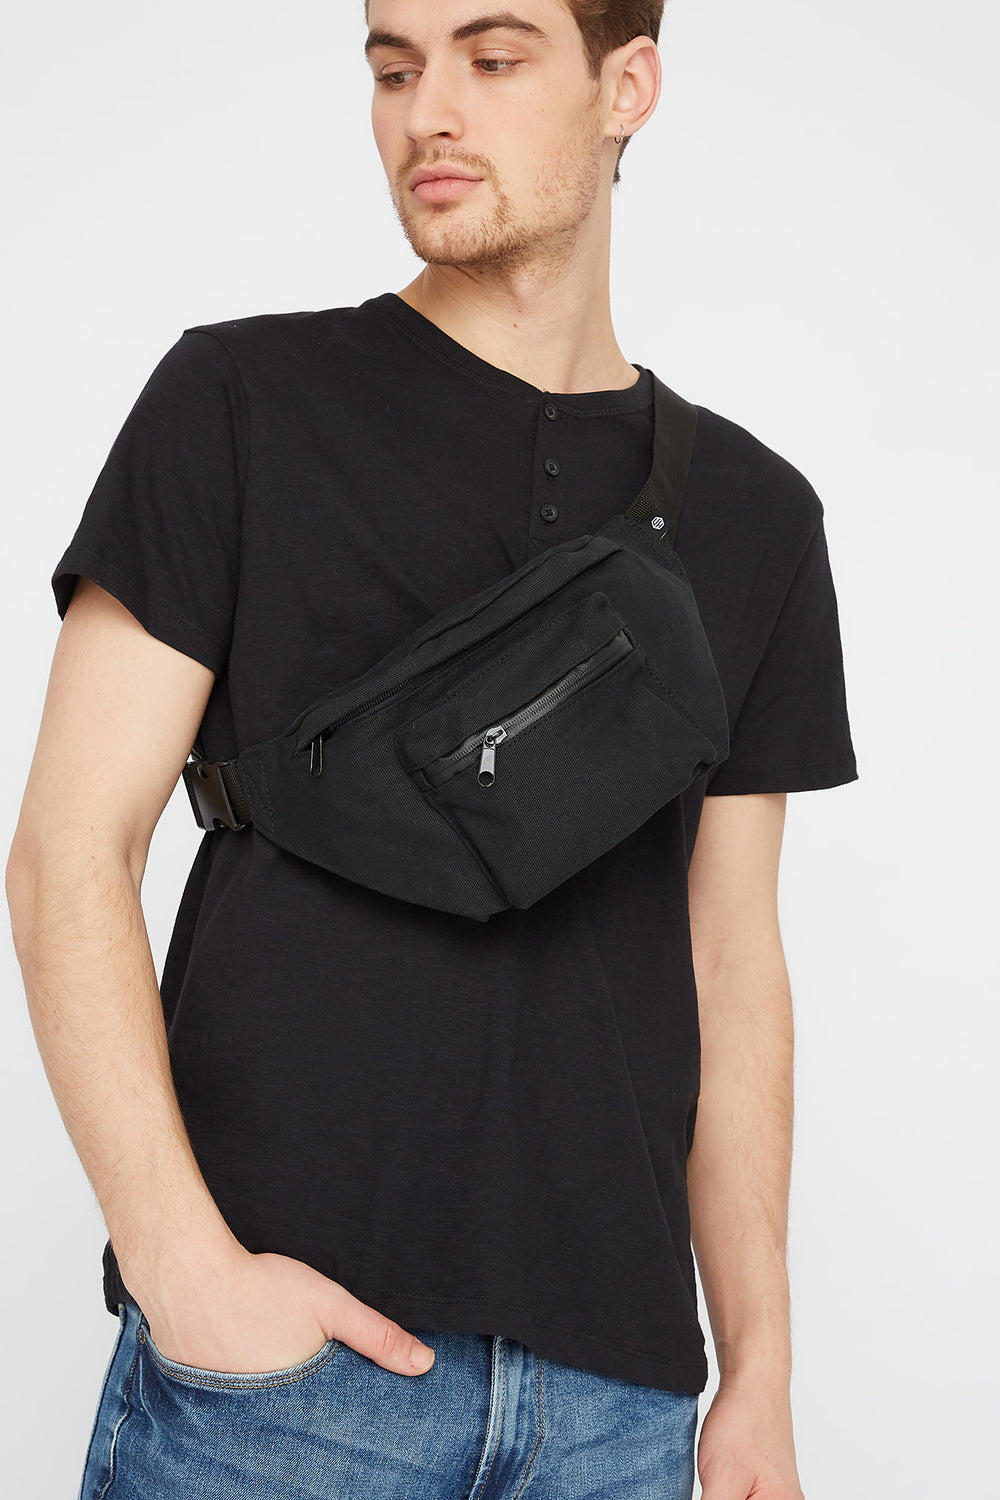 Black Canvas Fanny Pack Black